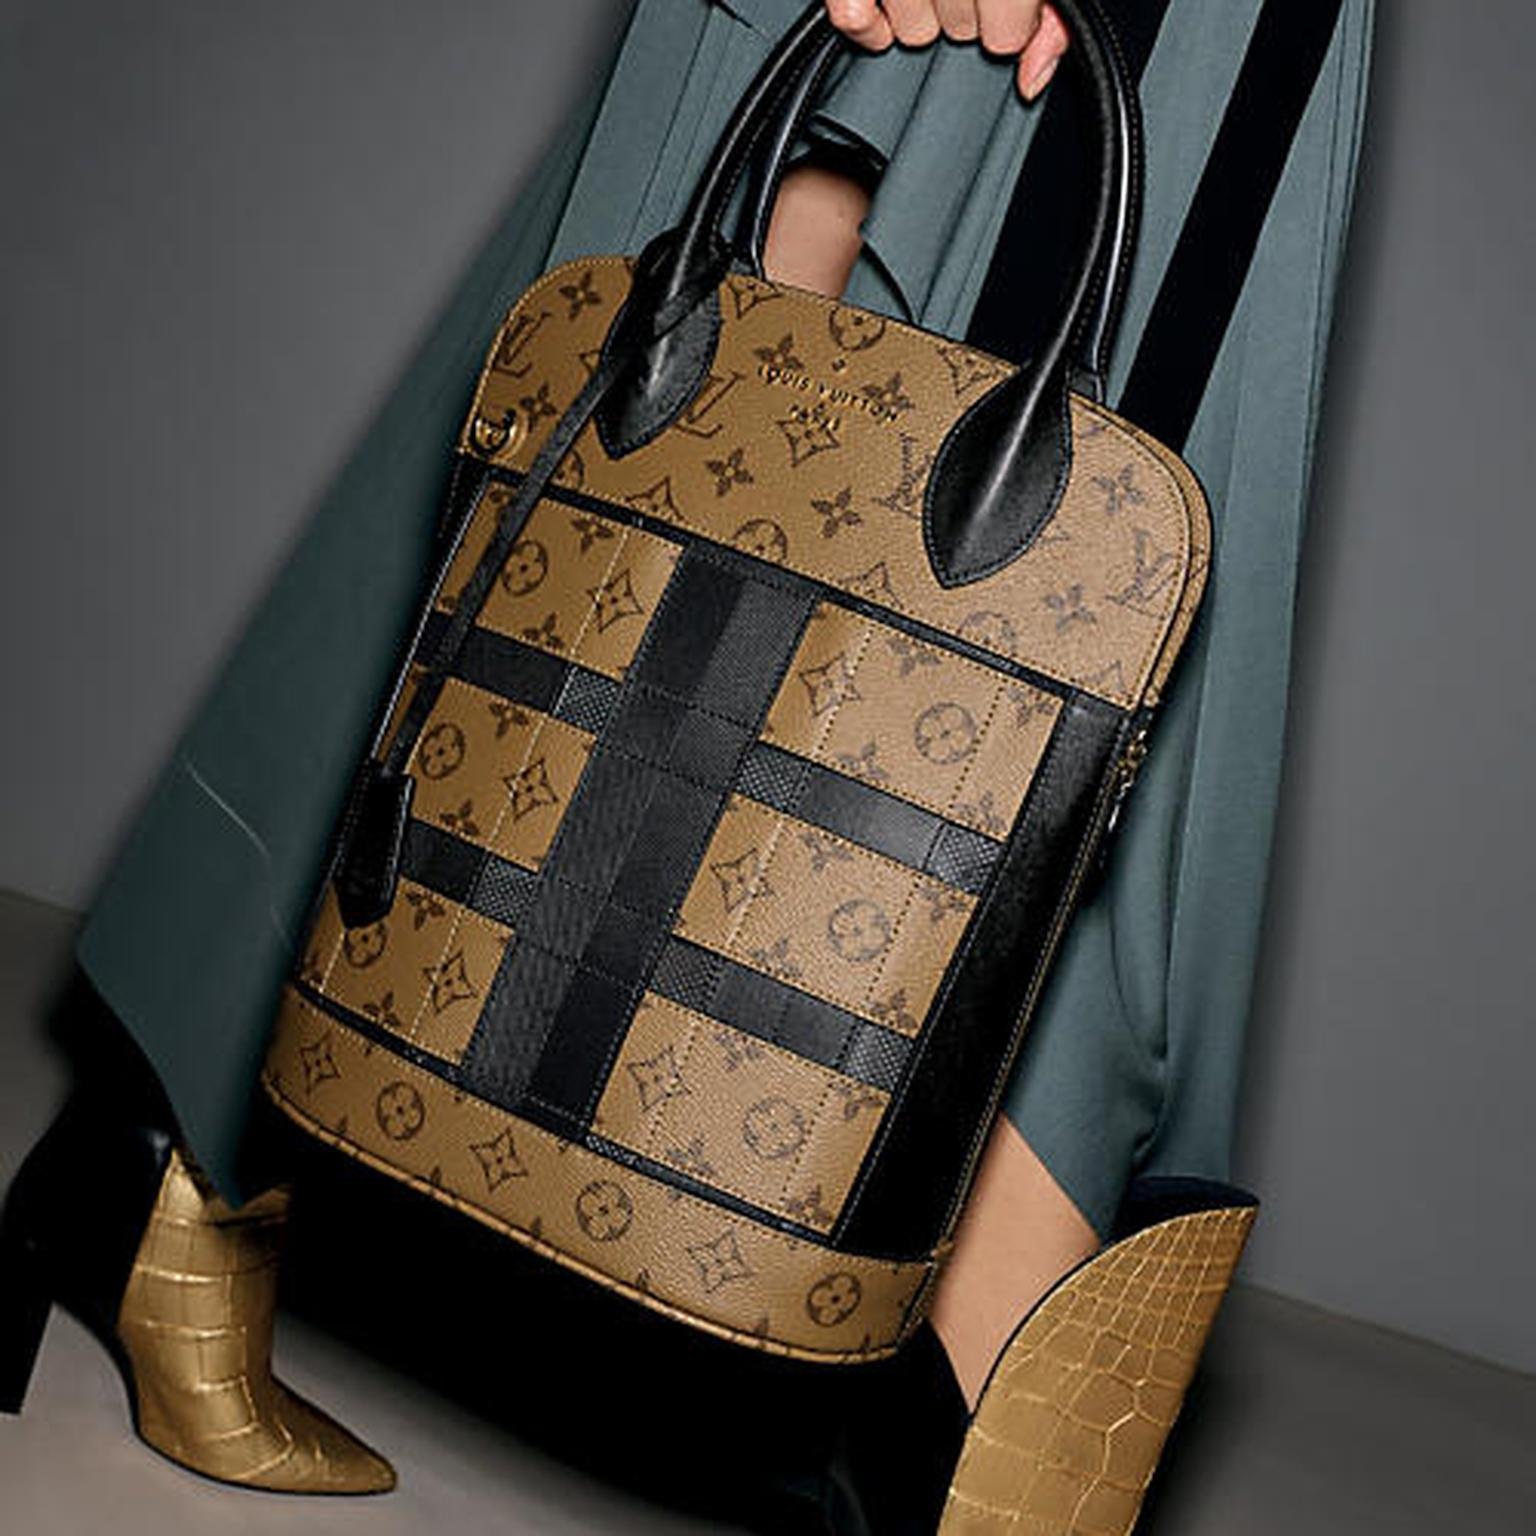 Louis Vuitton Tressage Tote bag in Monogram Reverse canvas